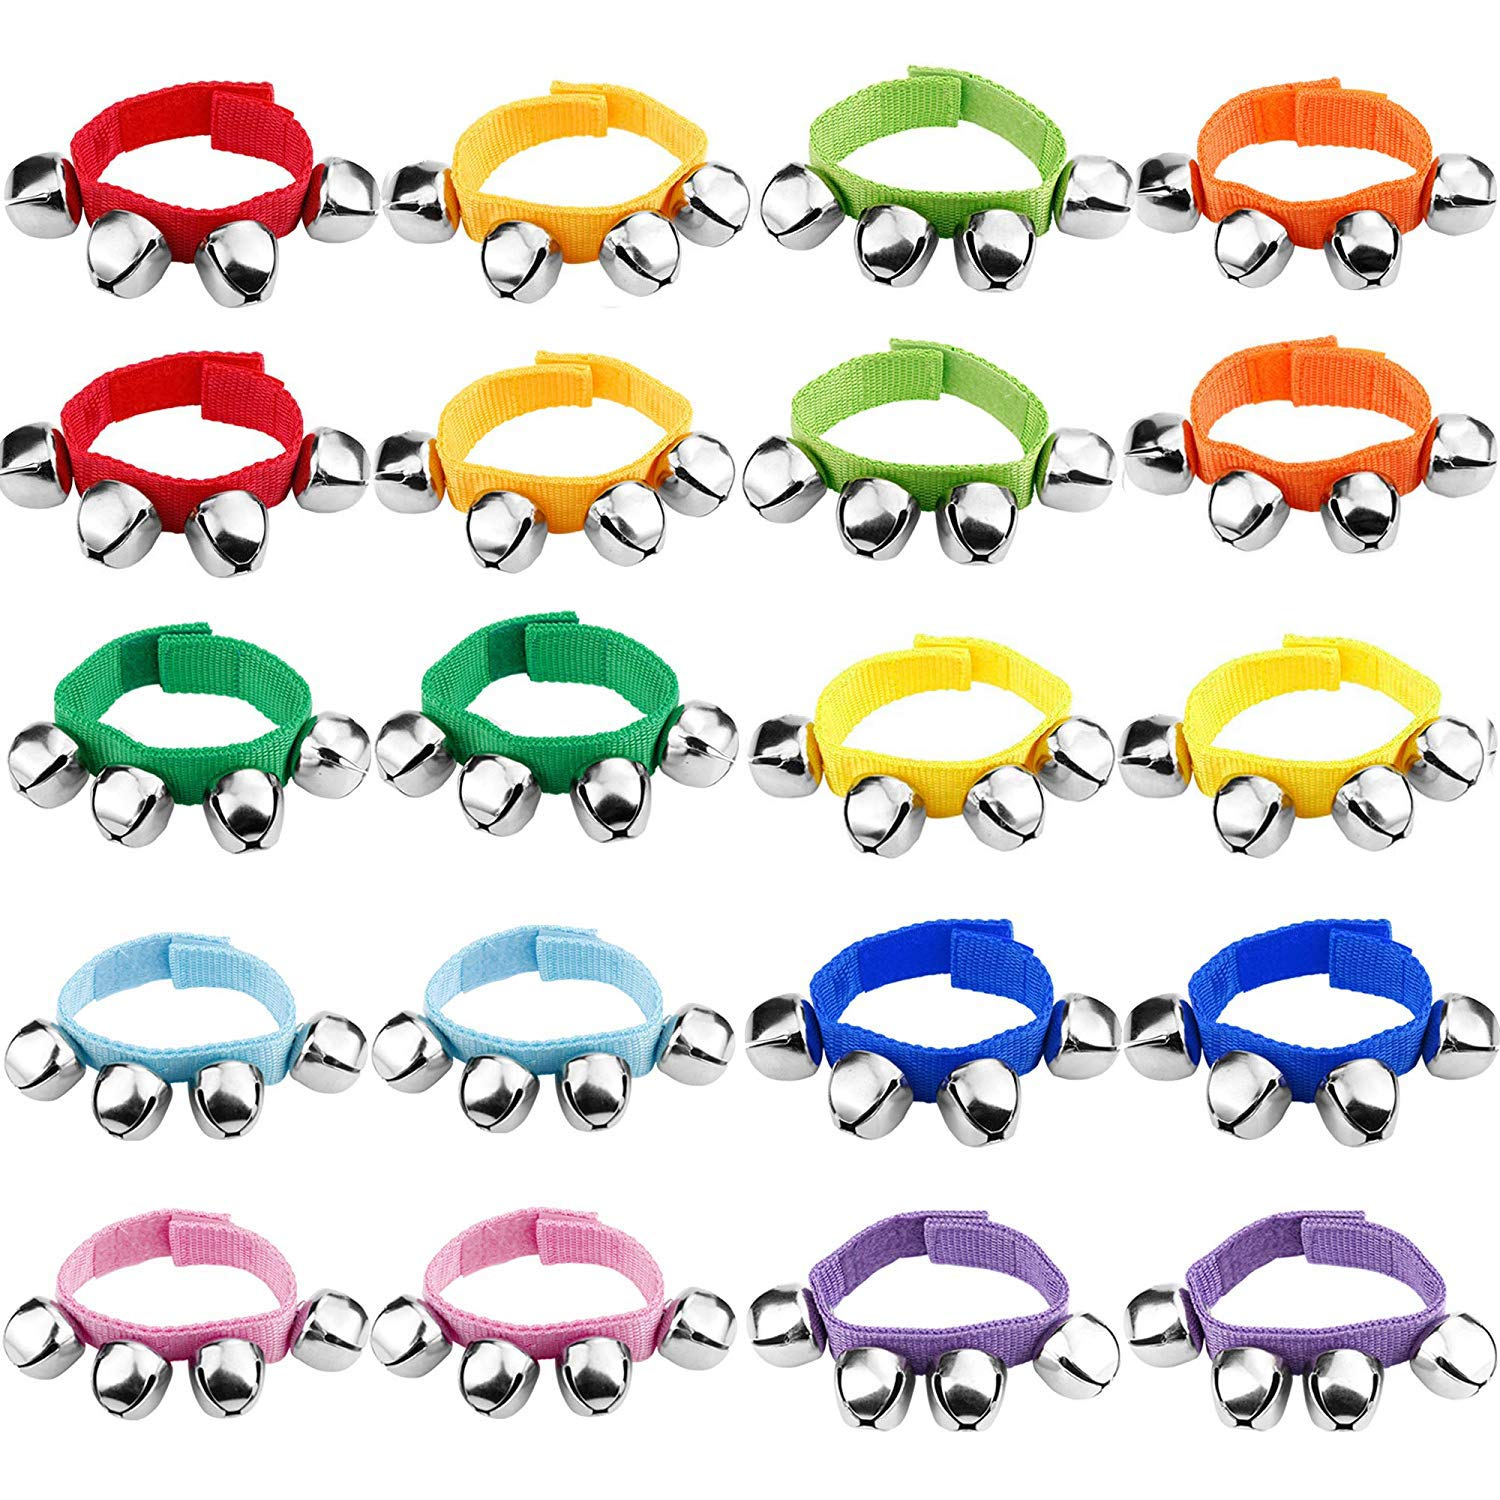 20Pcs Wrist Band Jingle Bells Musical Rhythm Toys Ankle Bells Instrument Percussion Orchestra Rattles Toy For Kids by Kwartz